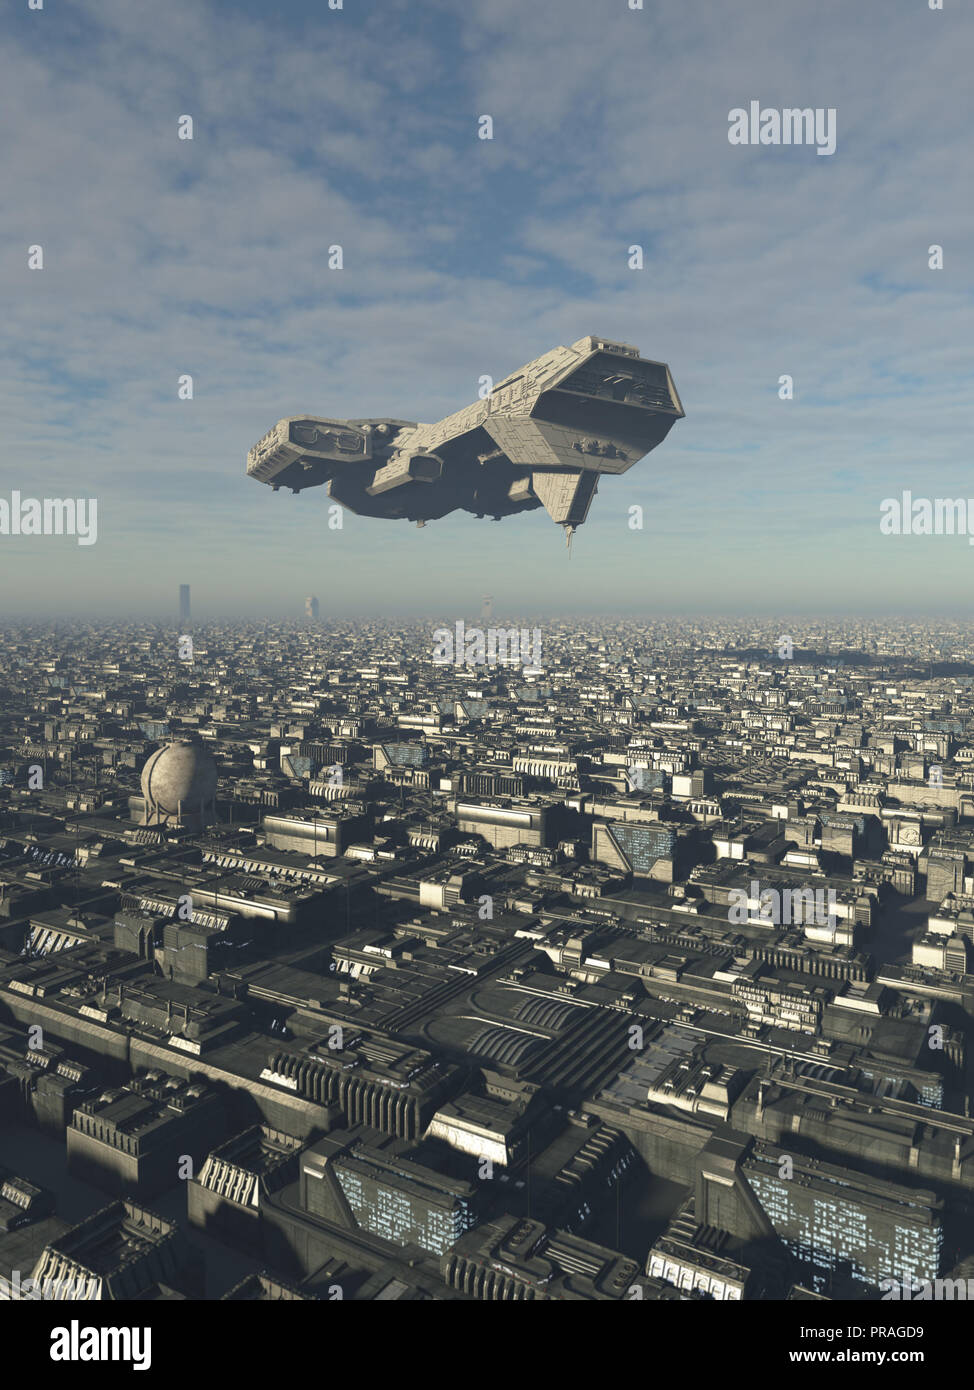 Spaceship Overflying a Future City - Stock Image